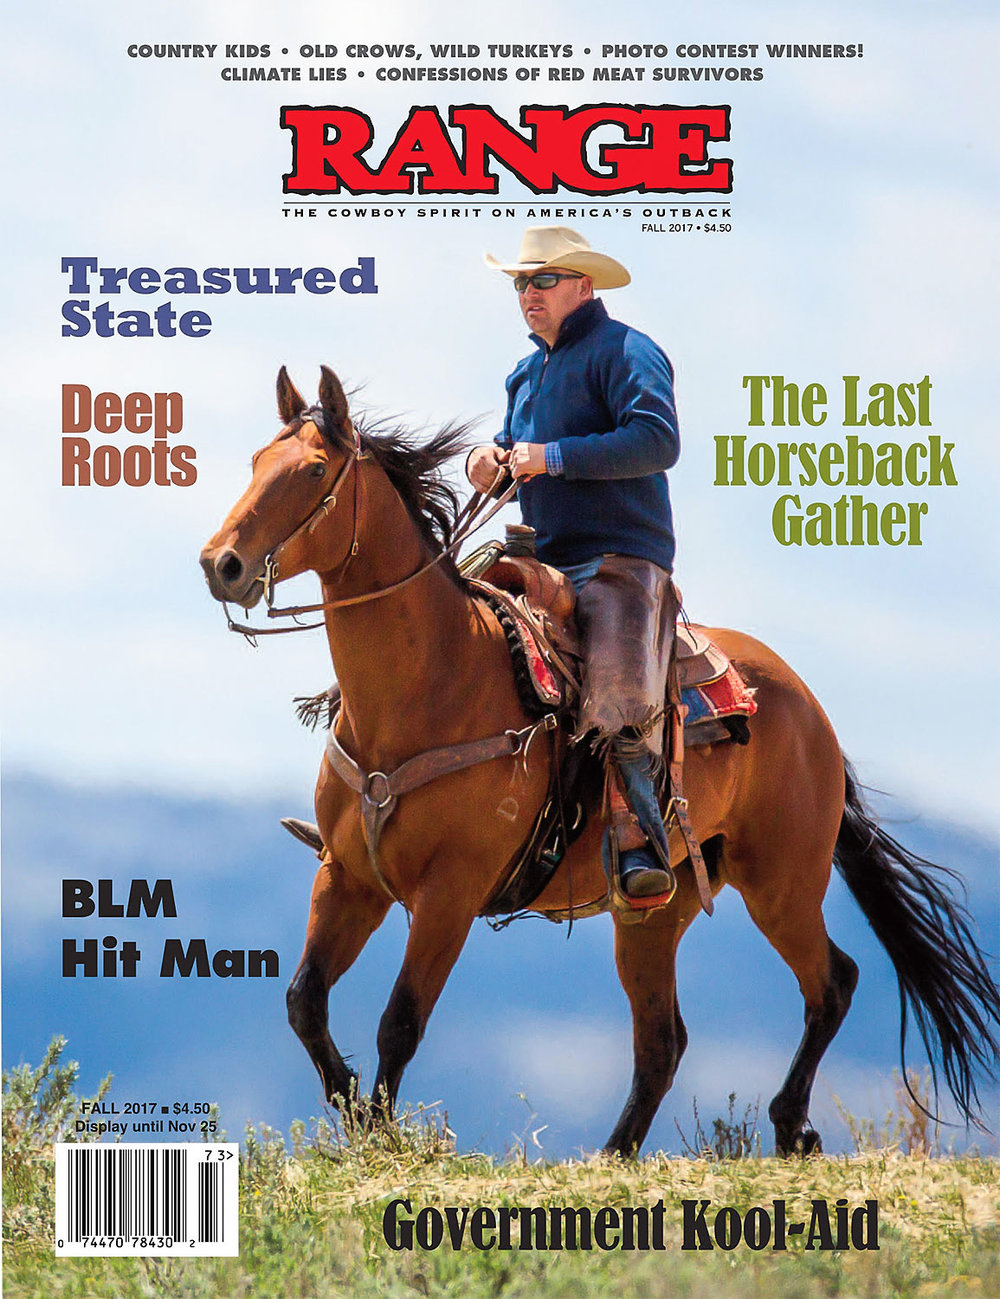 One of my many photos of cowboys appears here on the cover of the fall 2017 issue of Range Magazine, which hits the newsstands in another few weeks.